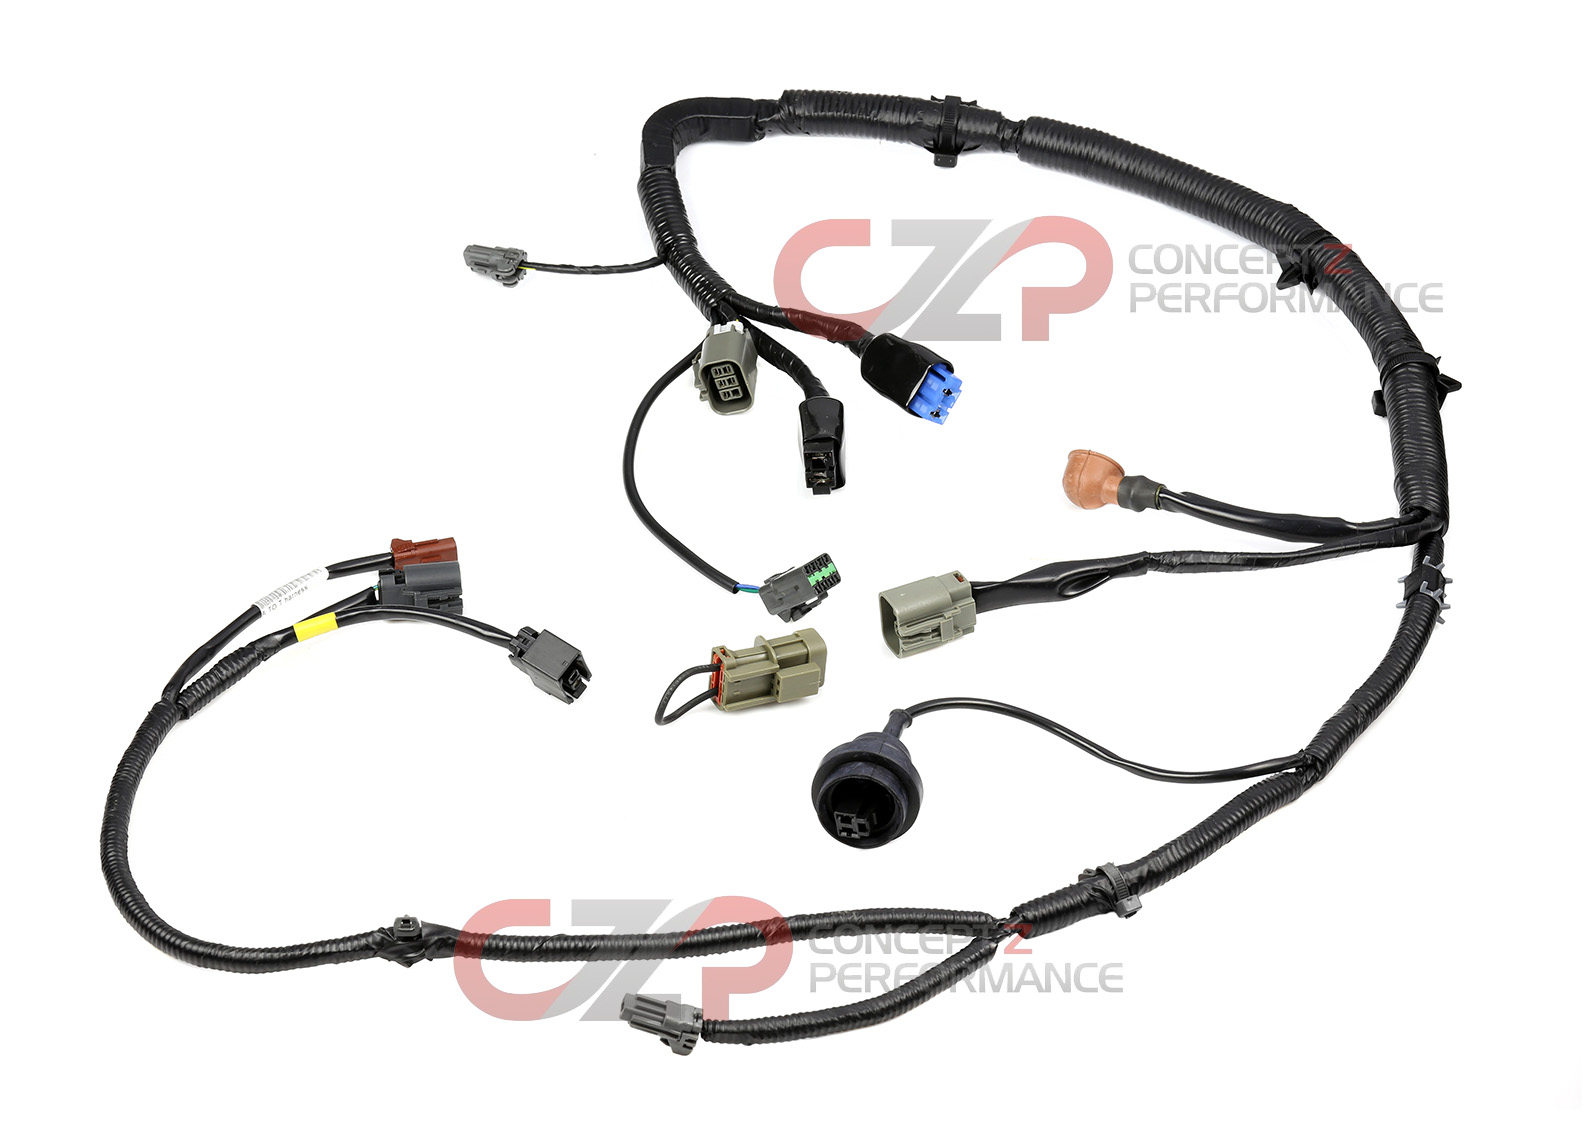 main wiring specialties alternator to transmission harness automatic at Wiring Specialties SR20DET at readyjetset.co